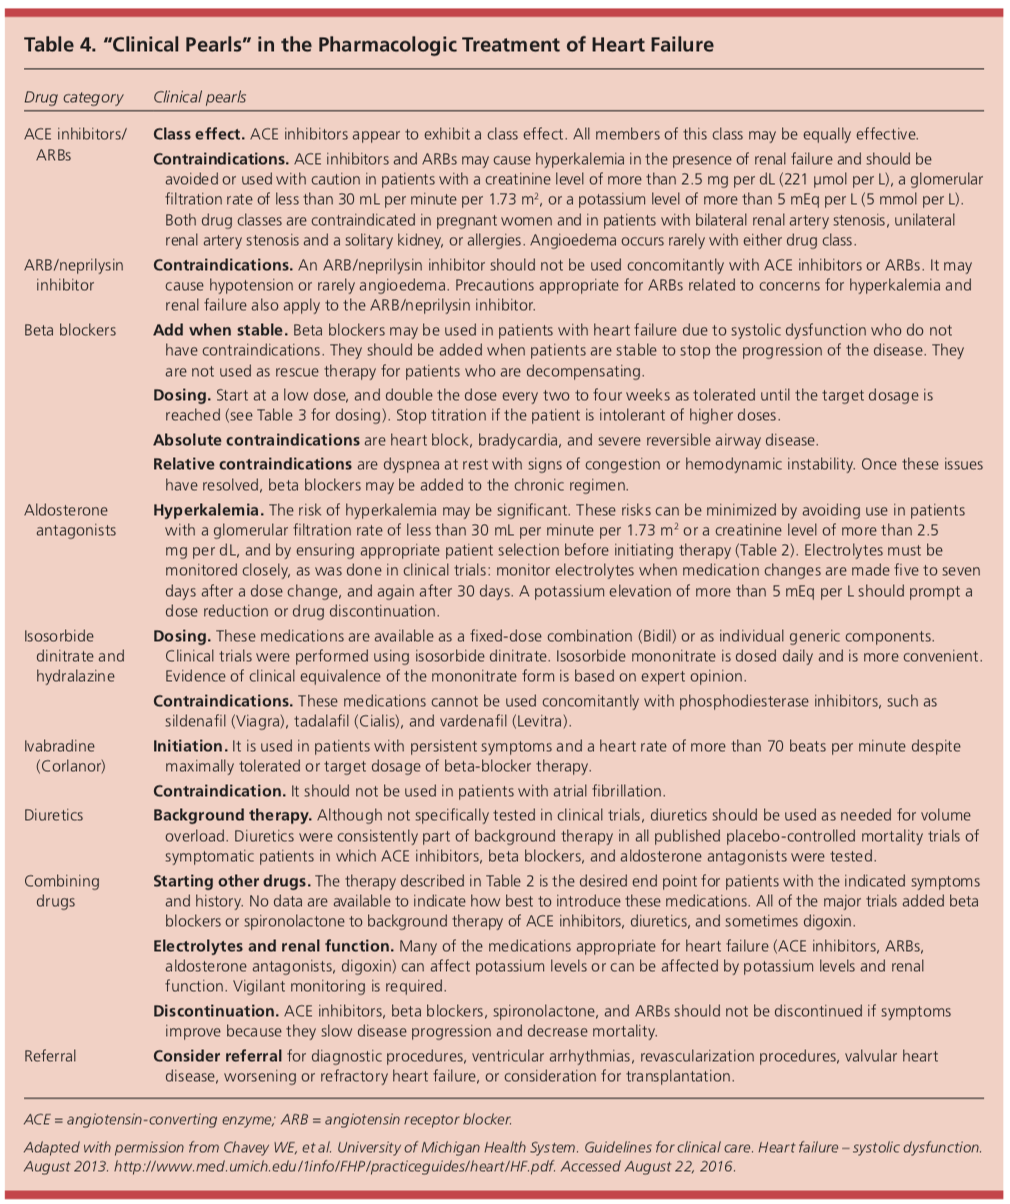 Clinical pearls for systolic dysfunction